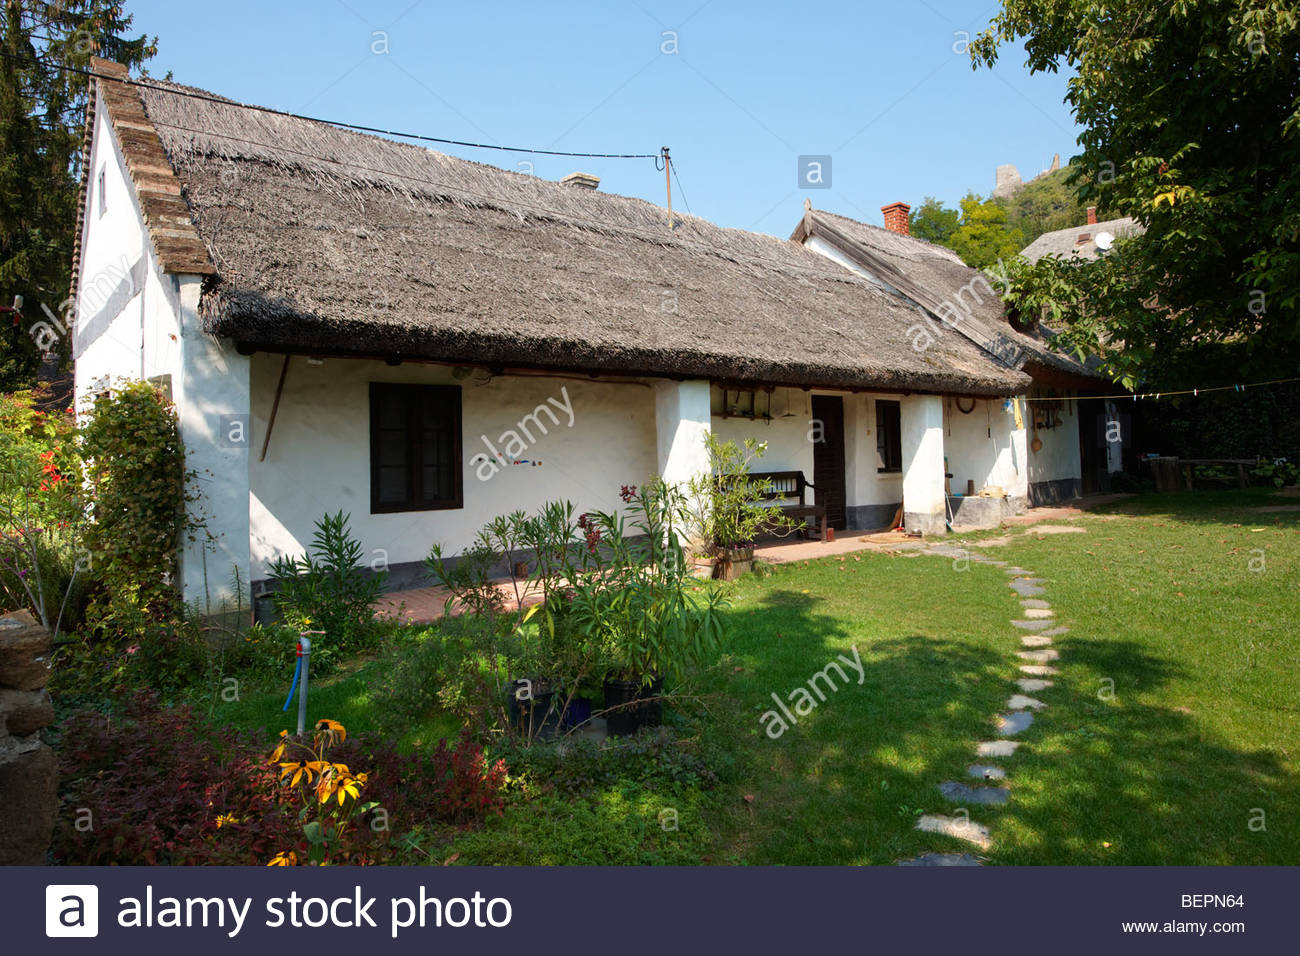 Traditional thatched farm house at Sigliget - Balaton, Hungary - Stock Image